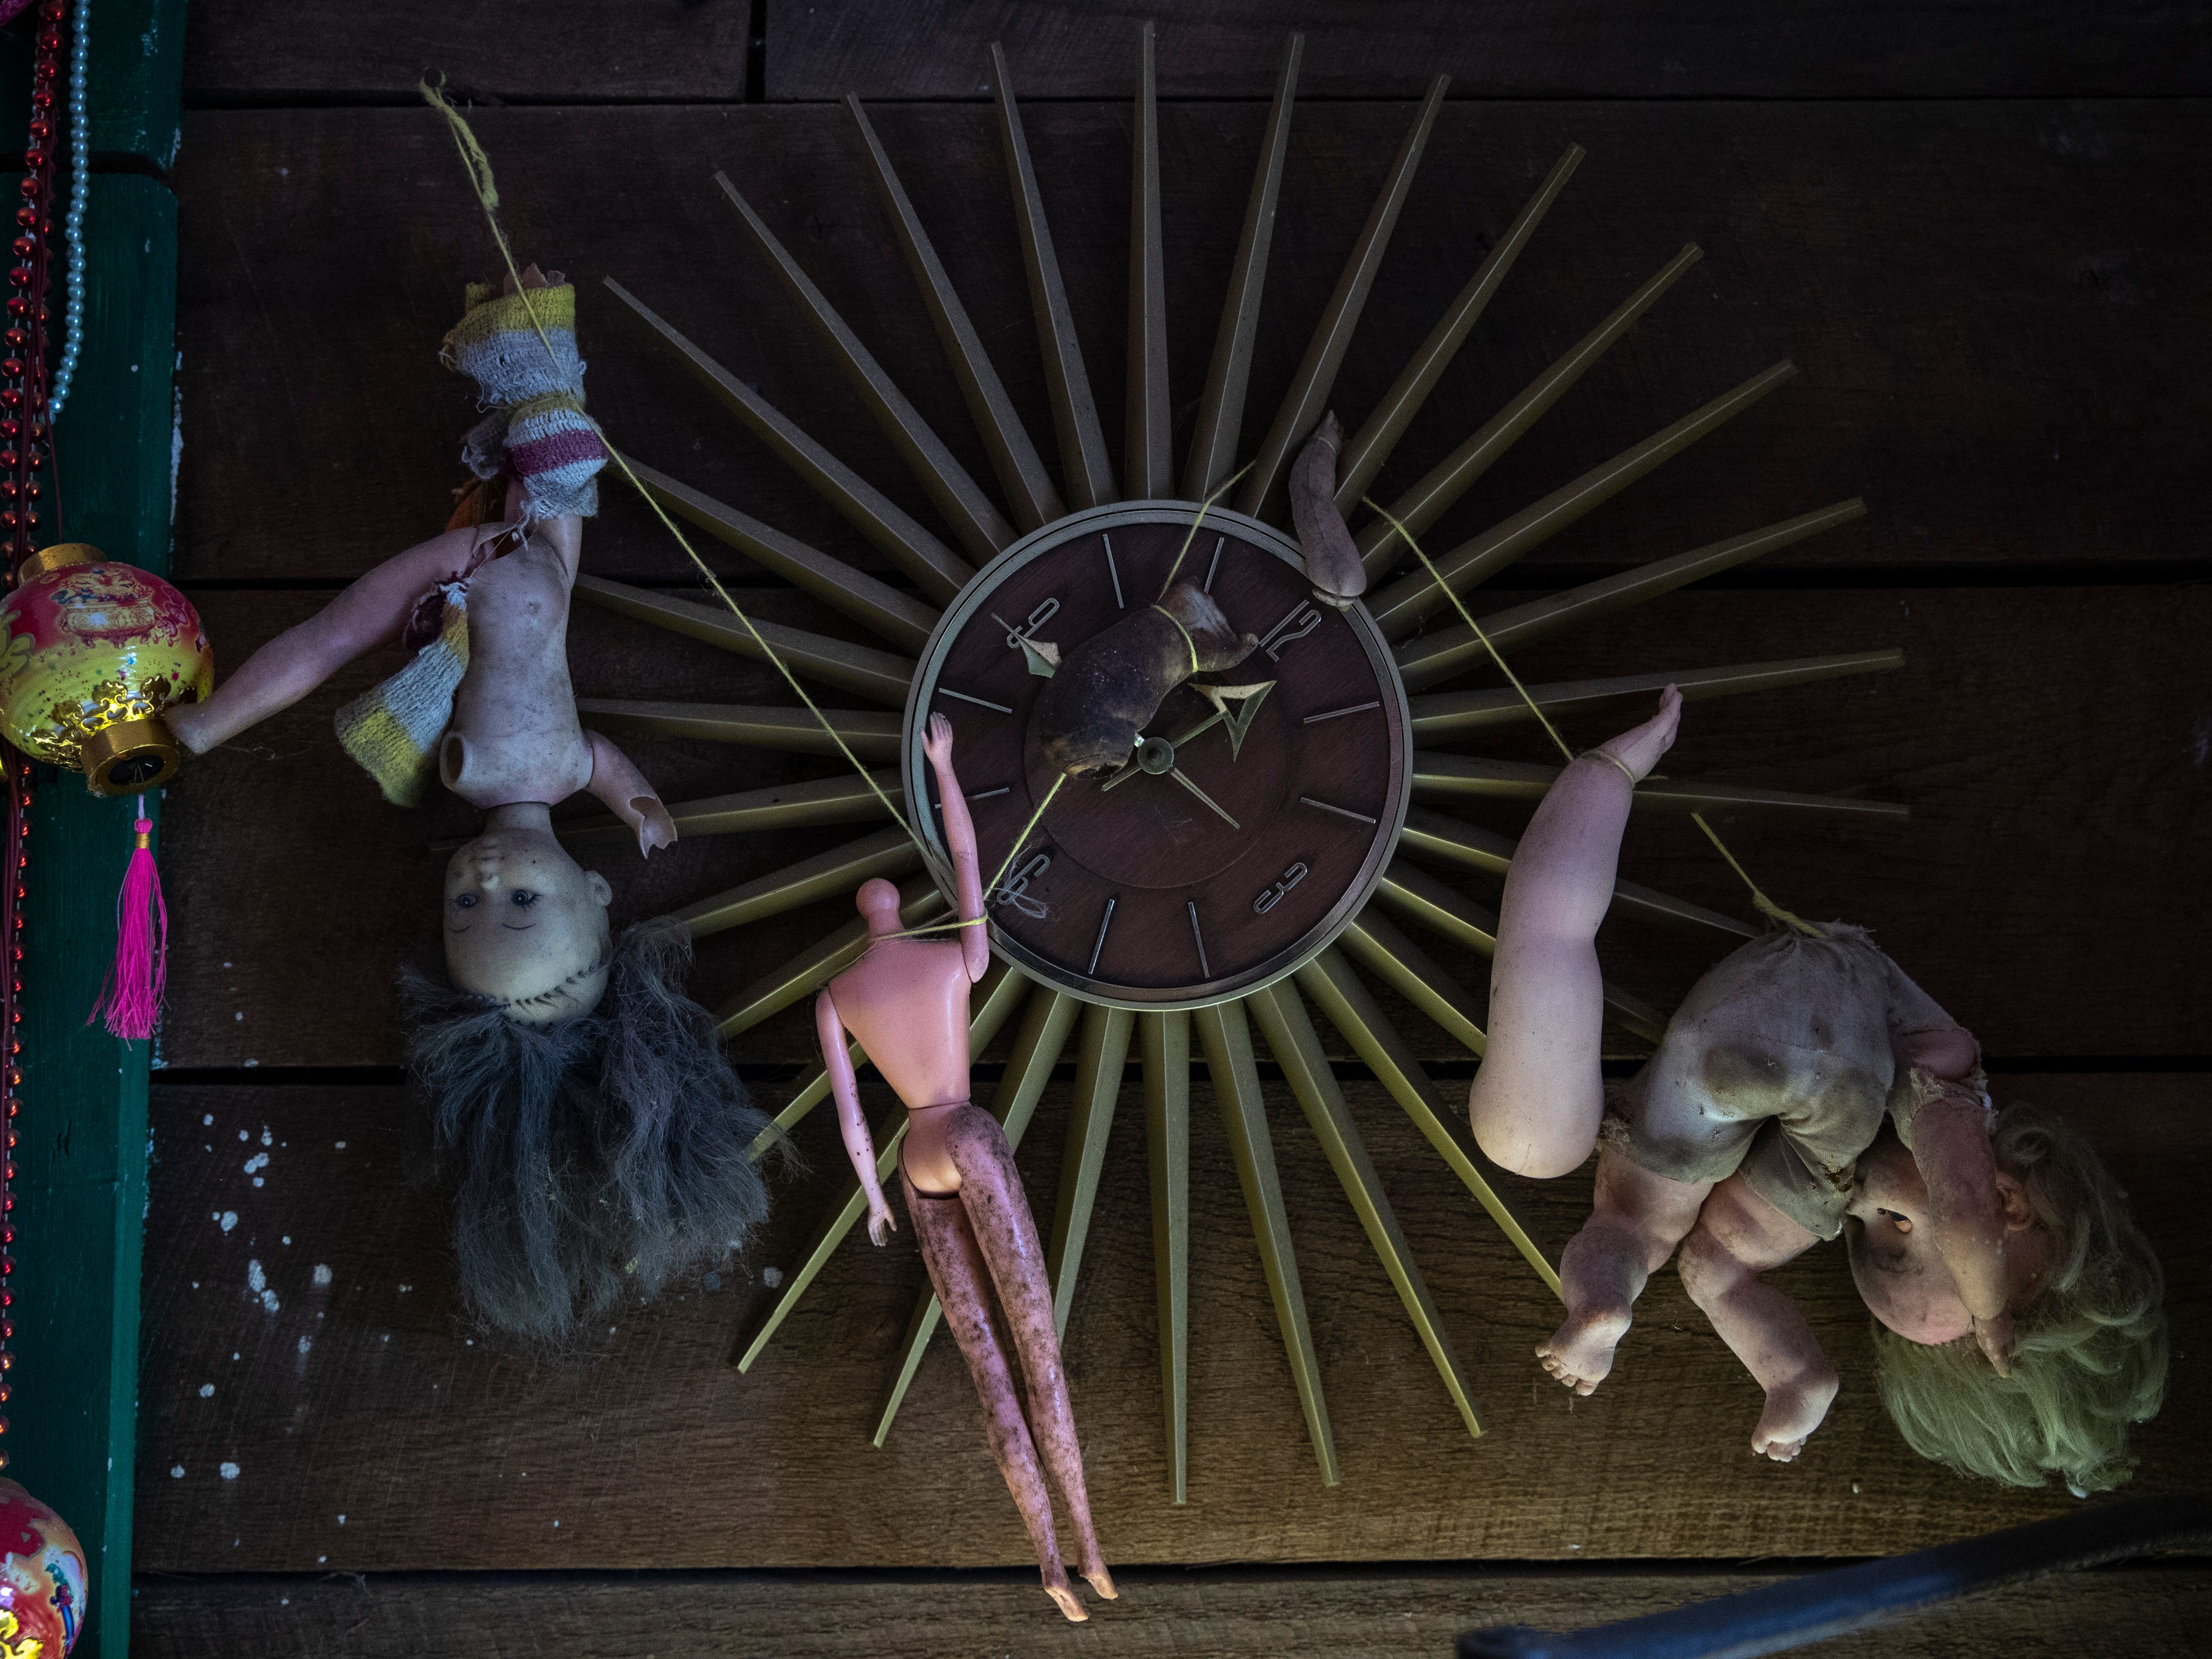 Baby dolls, ornaments and beads hang from an antique clock in the Curation Facility #1 at the Home for Wayward Babydolls. April 19, 2019